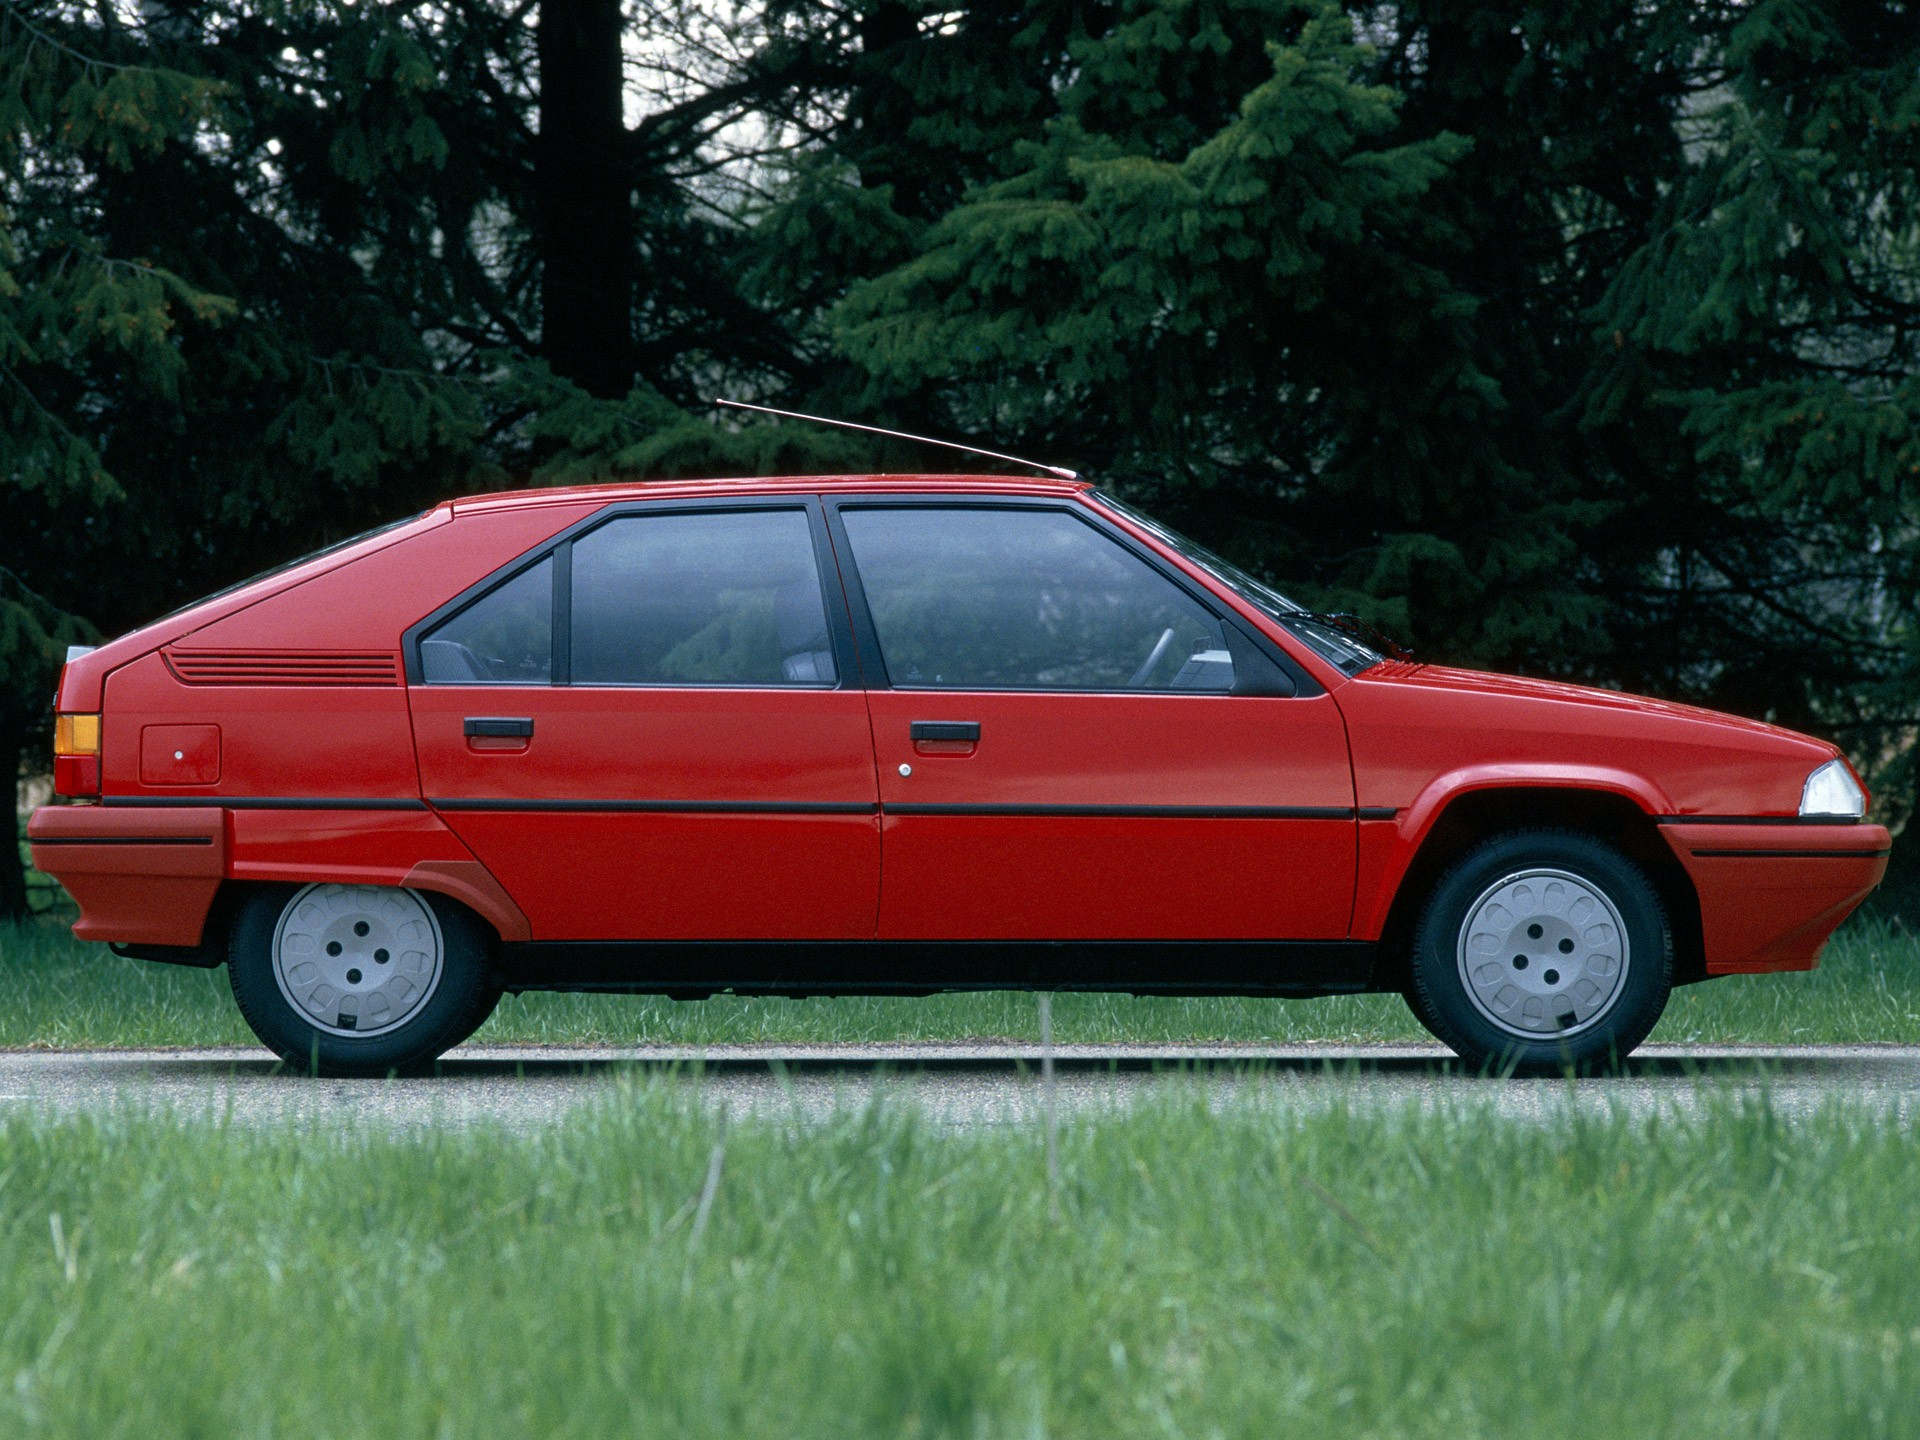 Citroen Bx Specs Photos 1986 1987 1988 1989 HD Wallpapers Download free images and photos [musssic.tk]